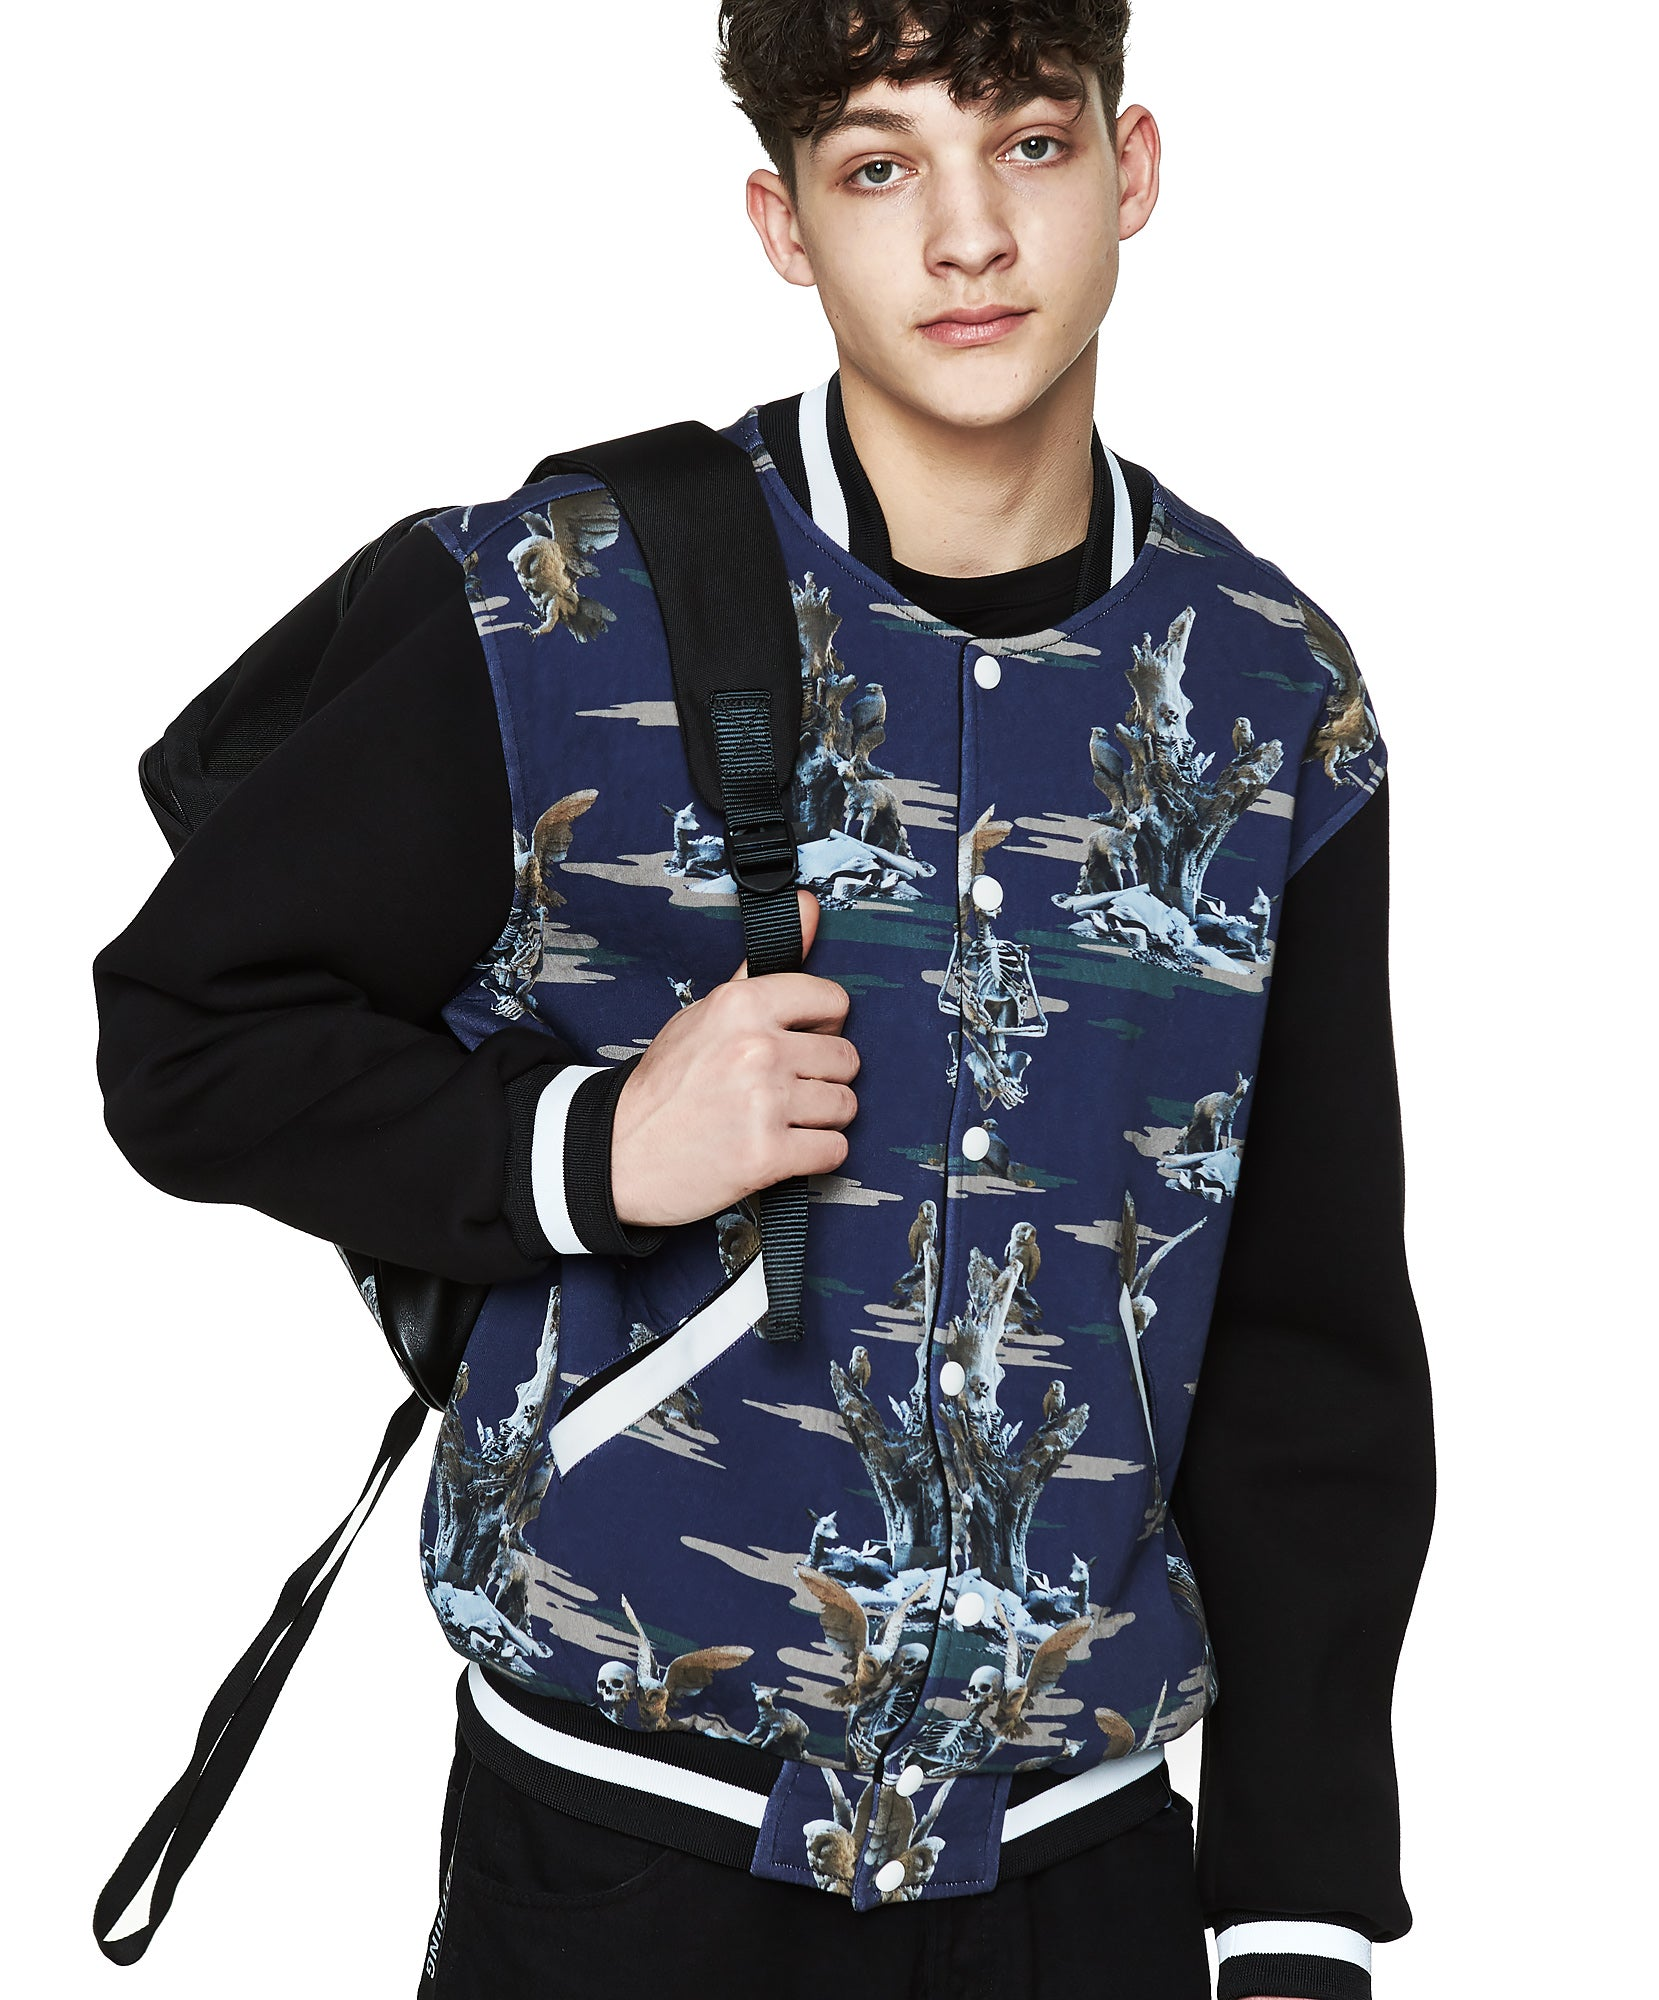 Fall of Paradise Blue Camo Varsity - Designer Brand - This Is Not Clothing – Lookbook Photo 5